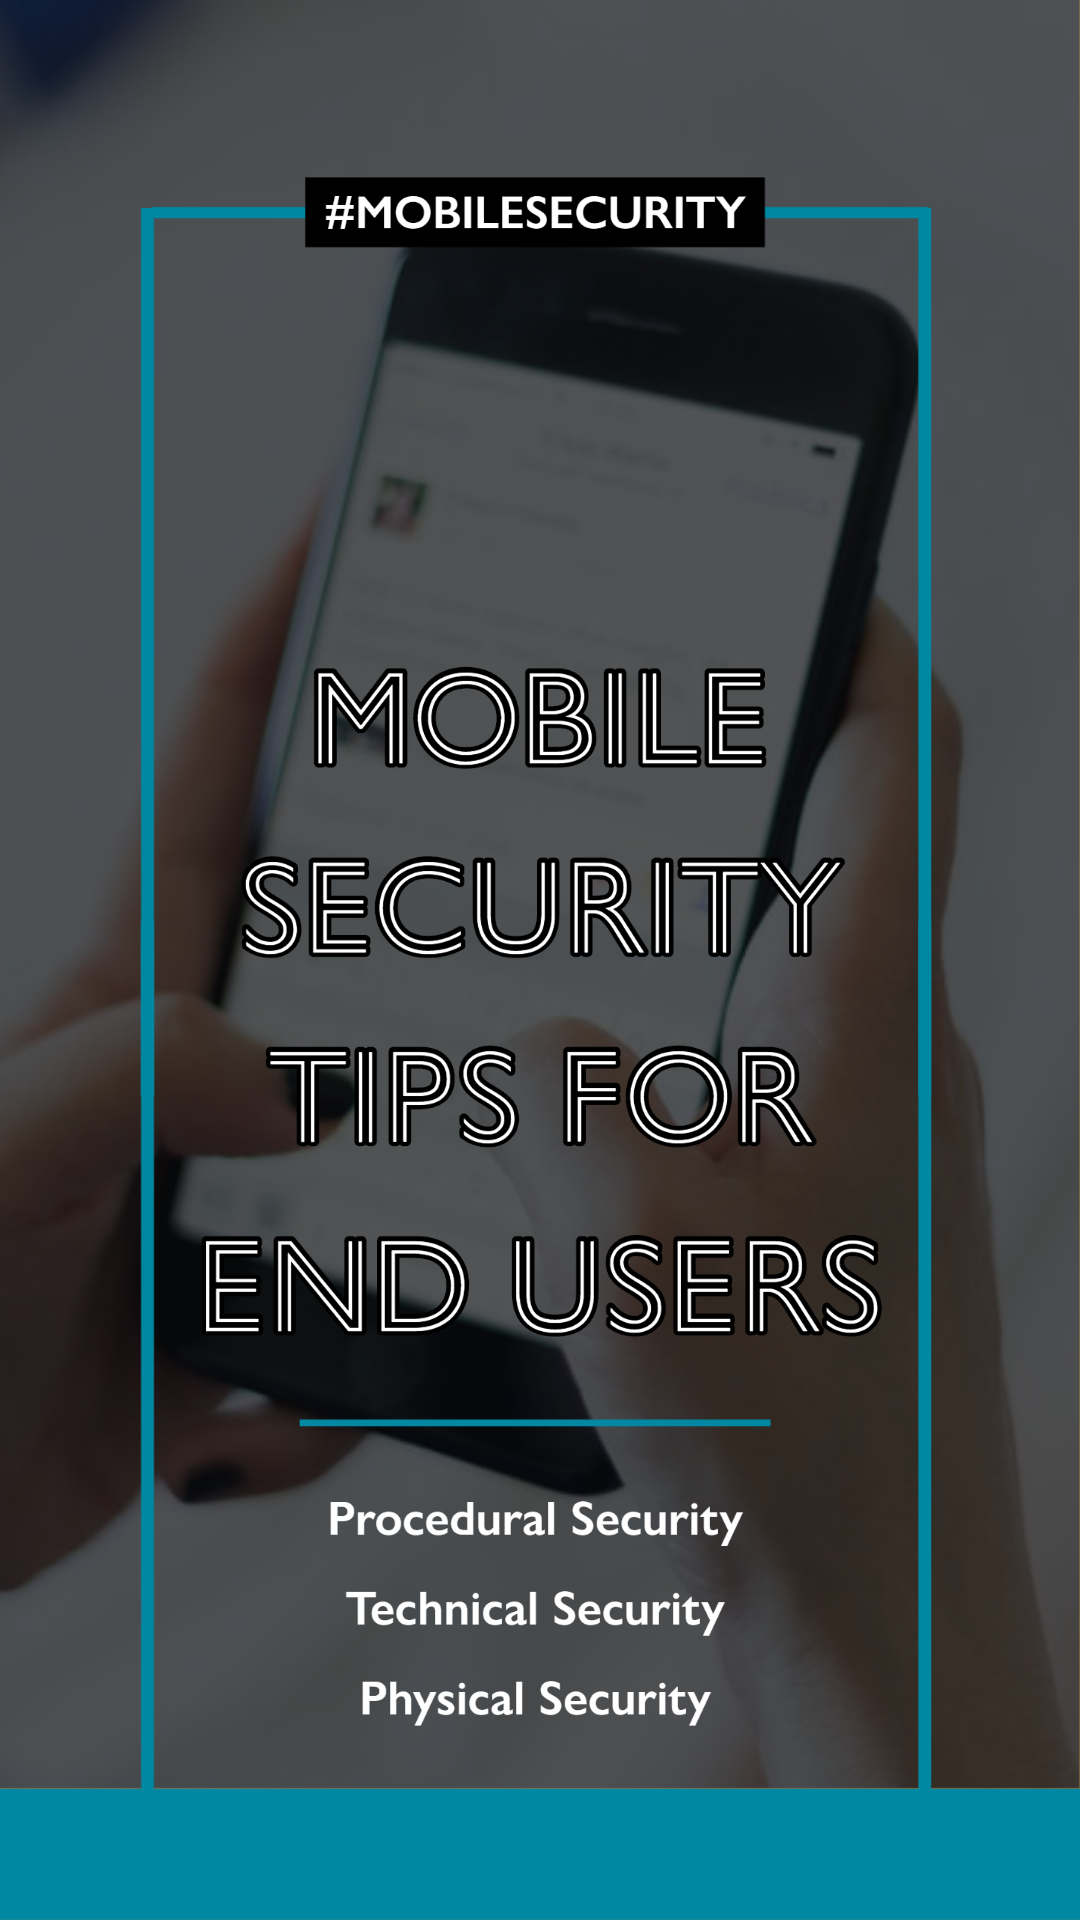 Mobile Security Tips for End Users